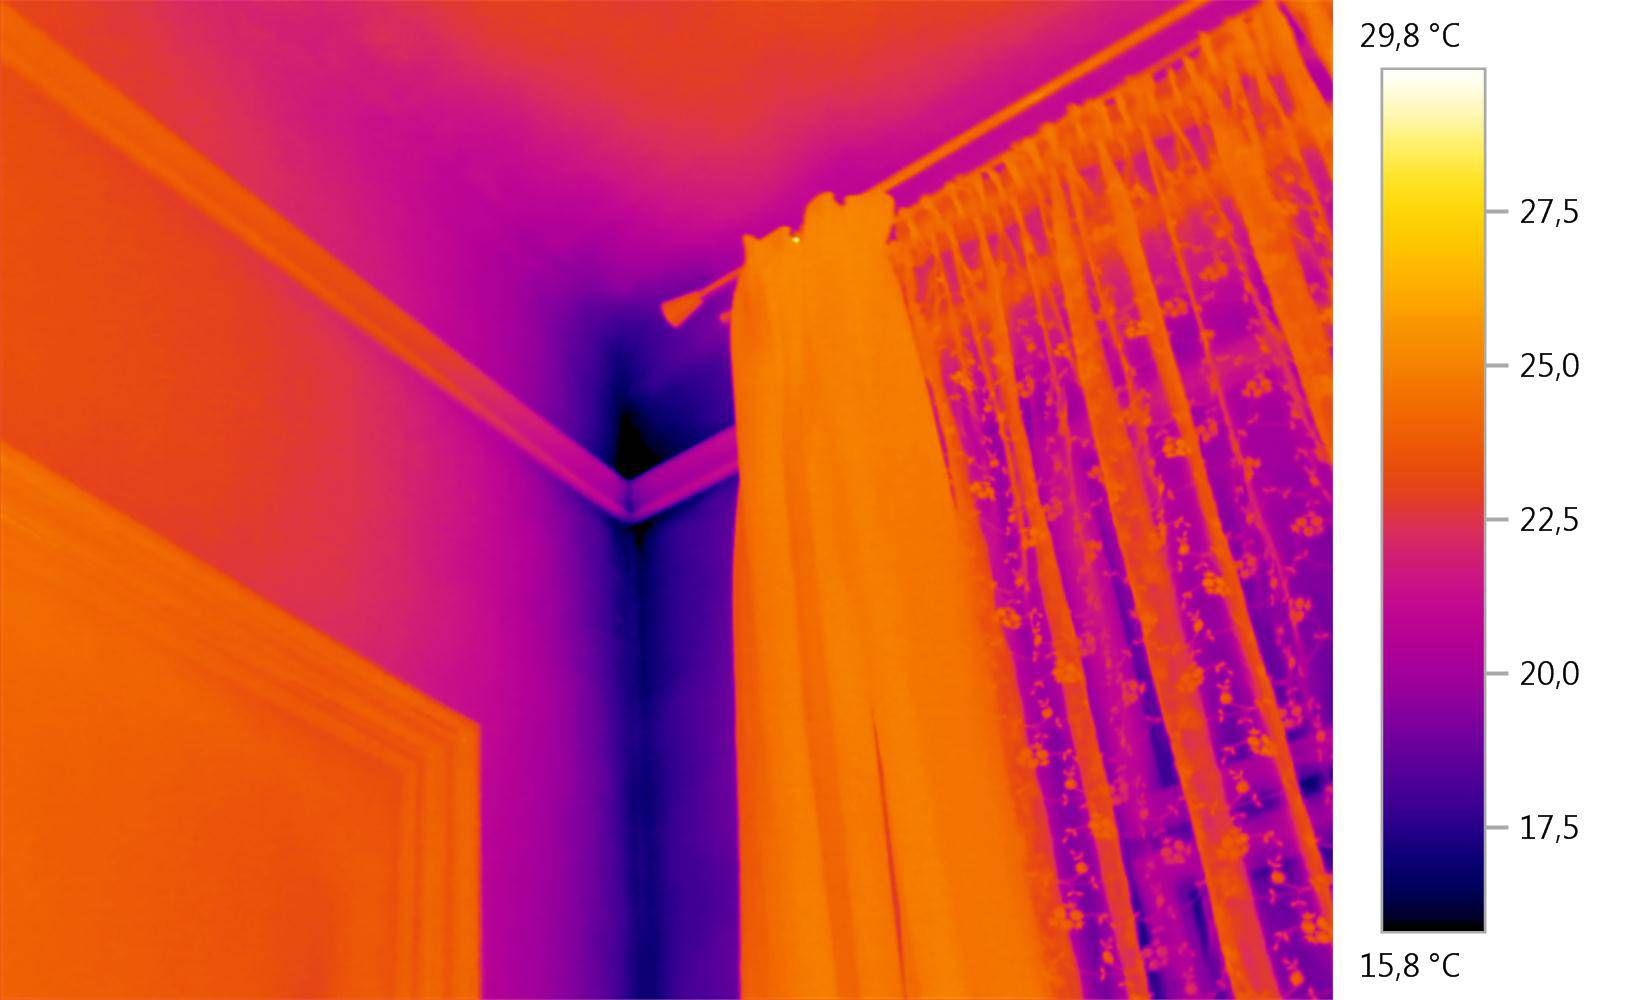 Thermal image thermal bridges